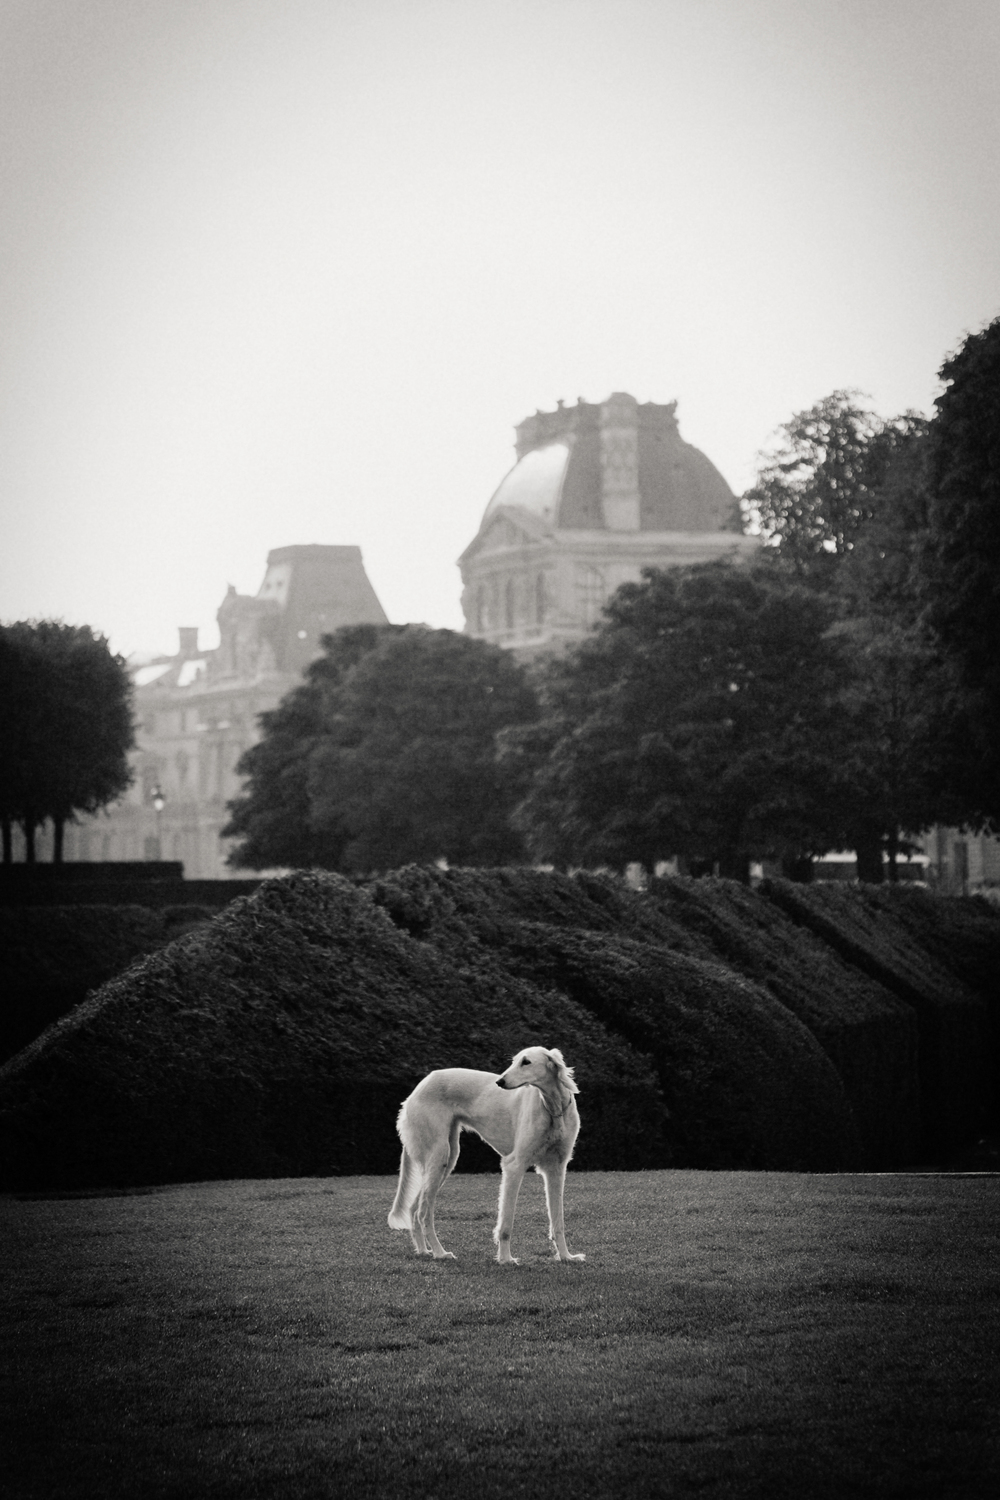 dog in park, Paris 2014.